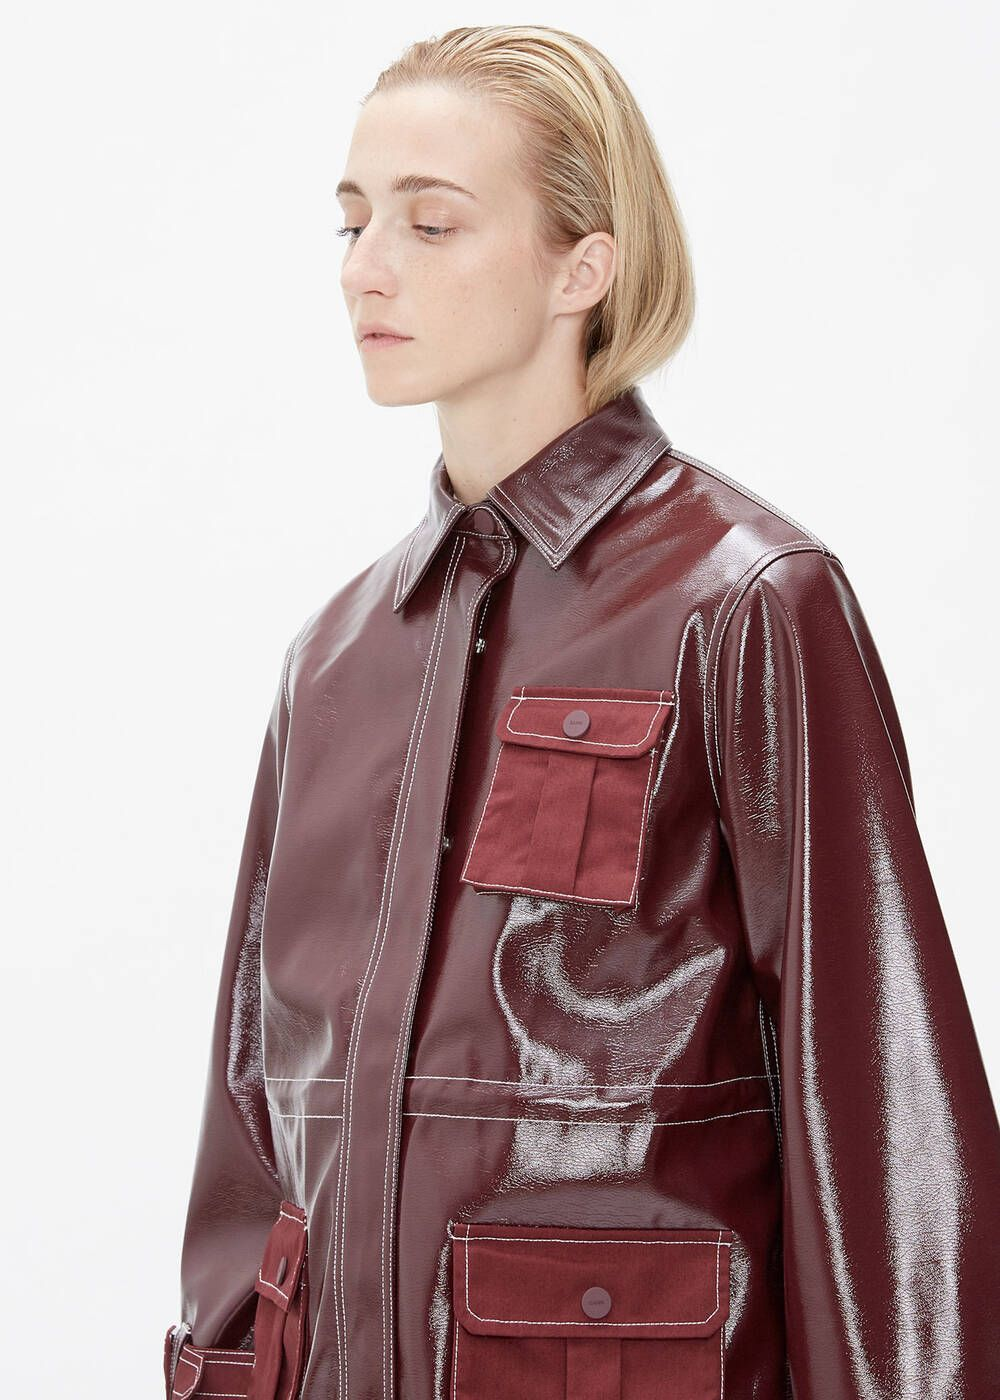 Ganni Patent Leather Jacket Leather Jacket Patent Leather Leather [ 1400 x 1000 Pixel ]